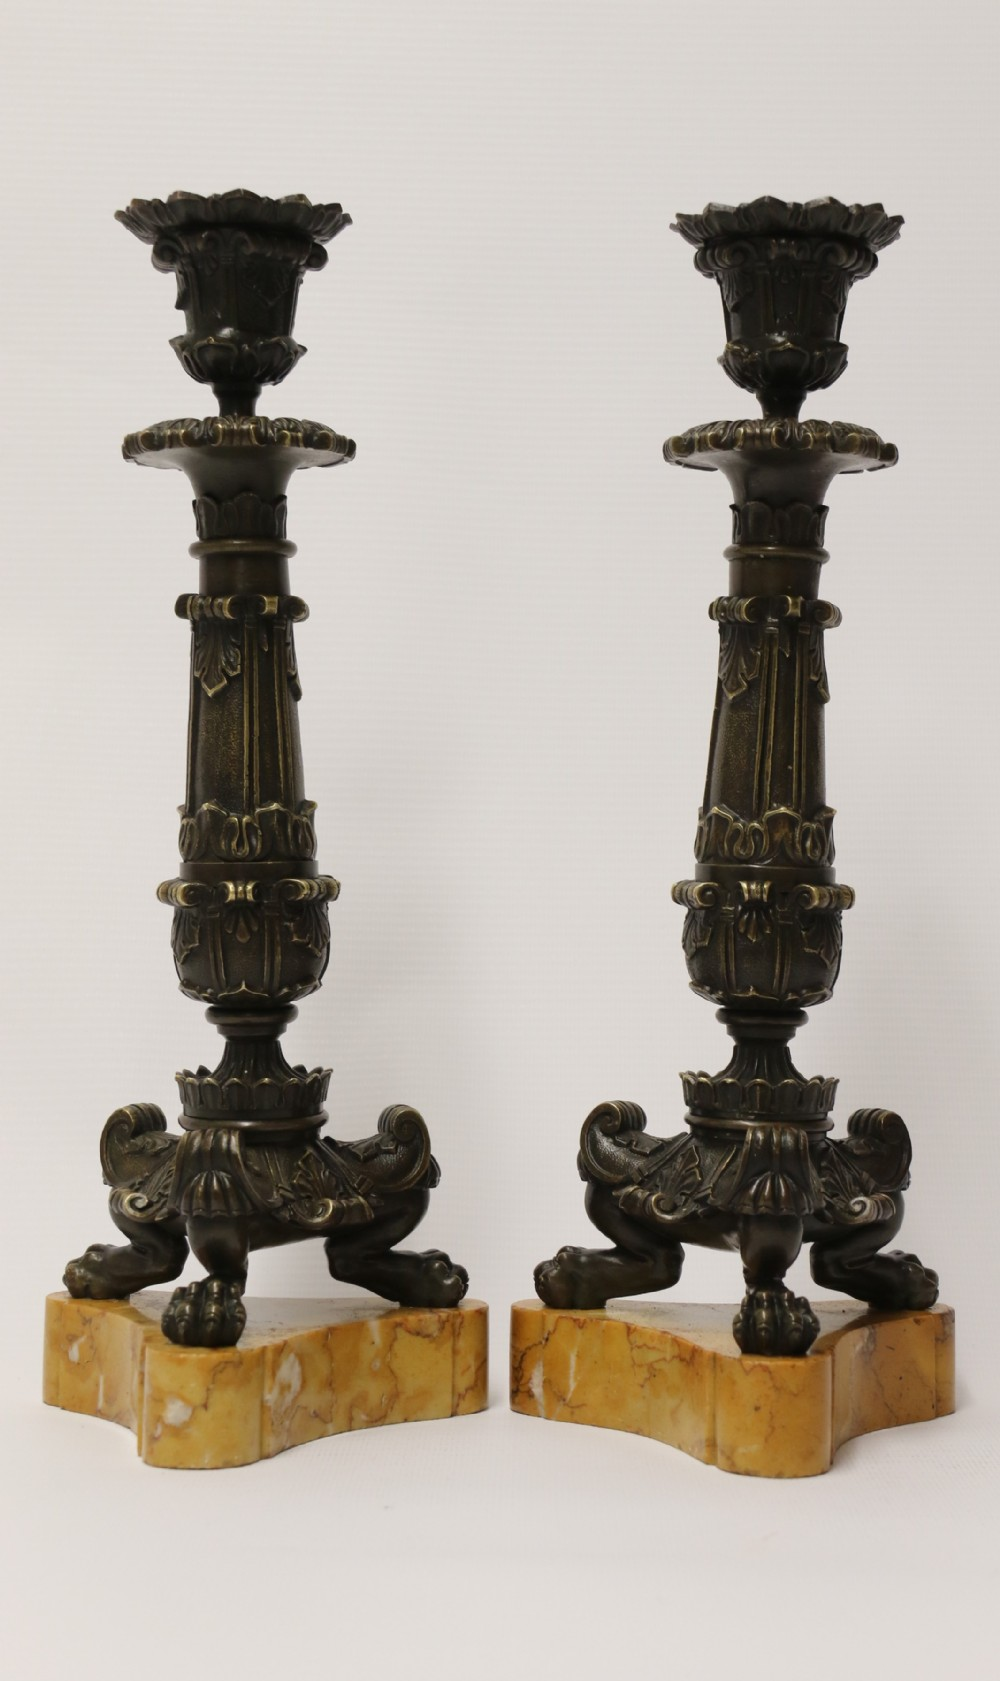 a superb pair of early 19th c french empire bronze candlesticks